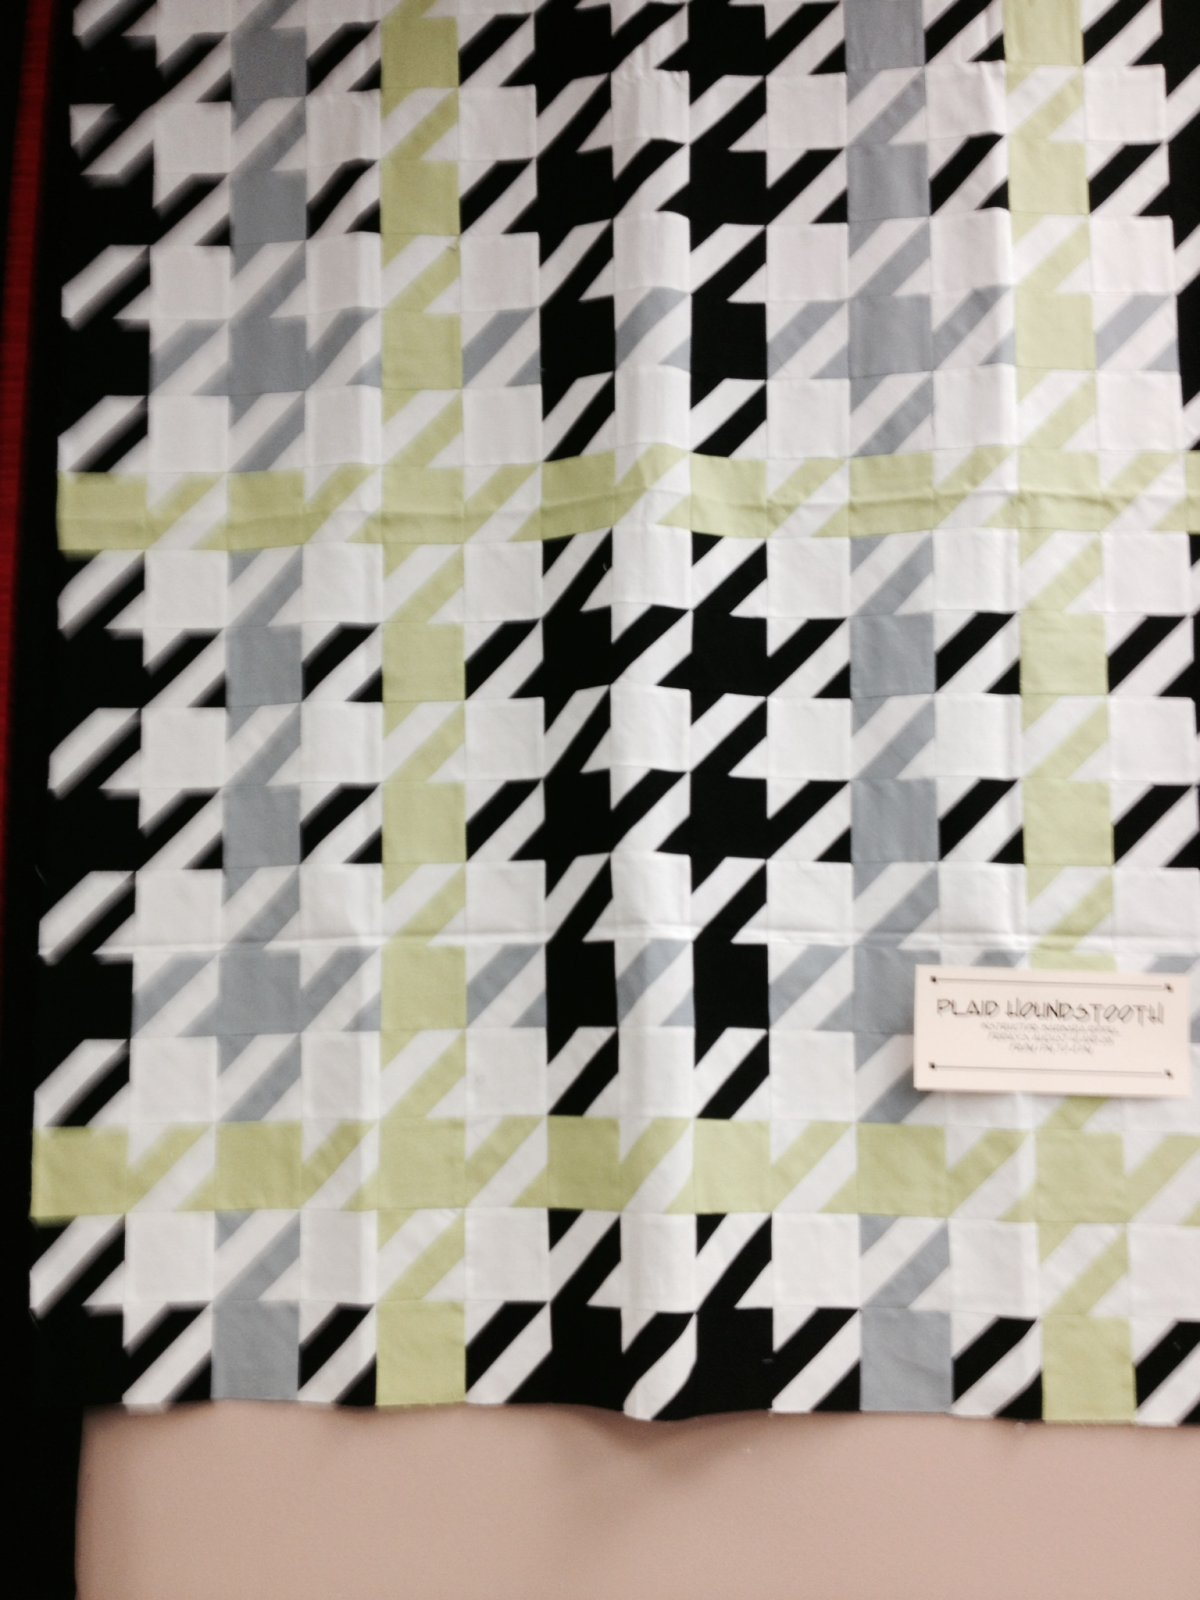 Plaid Houndstooth : houndstooth quilt pattern - Adamdwight.com